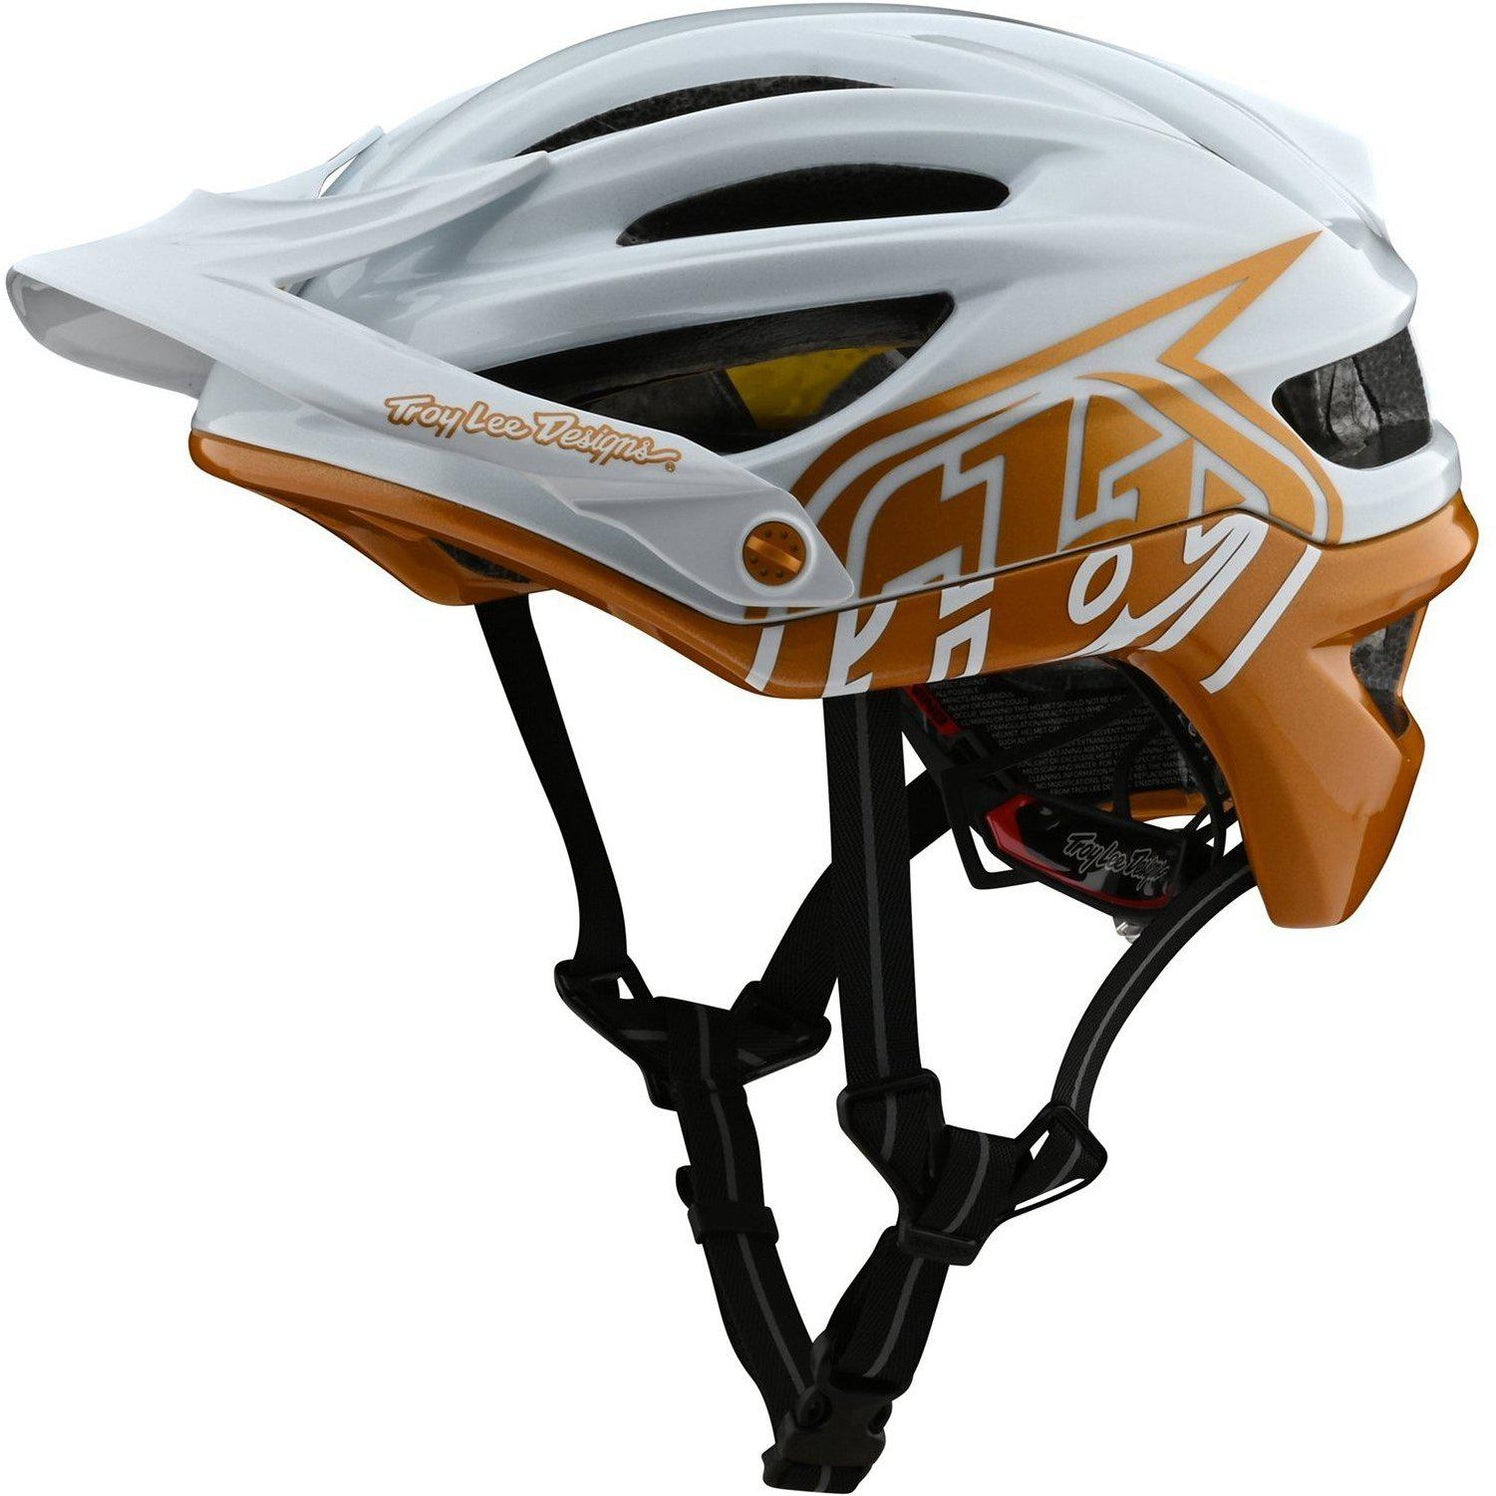 Troy Lee Designs-Troy Lee Designs A2 MIPS Helmet-Decoy - Pearl White/Gold-M/L-TLD191485043-saddleback-elite-performance-cycling